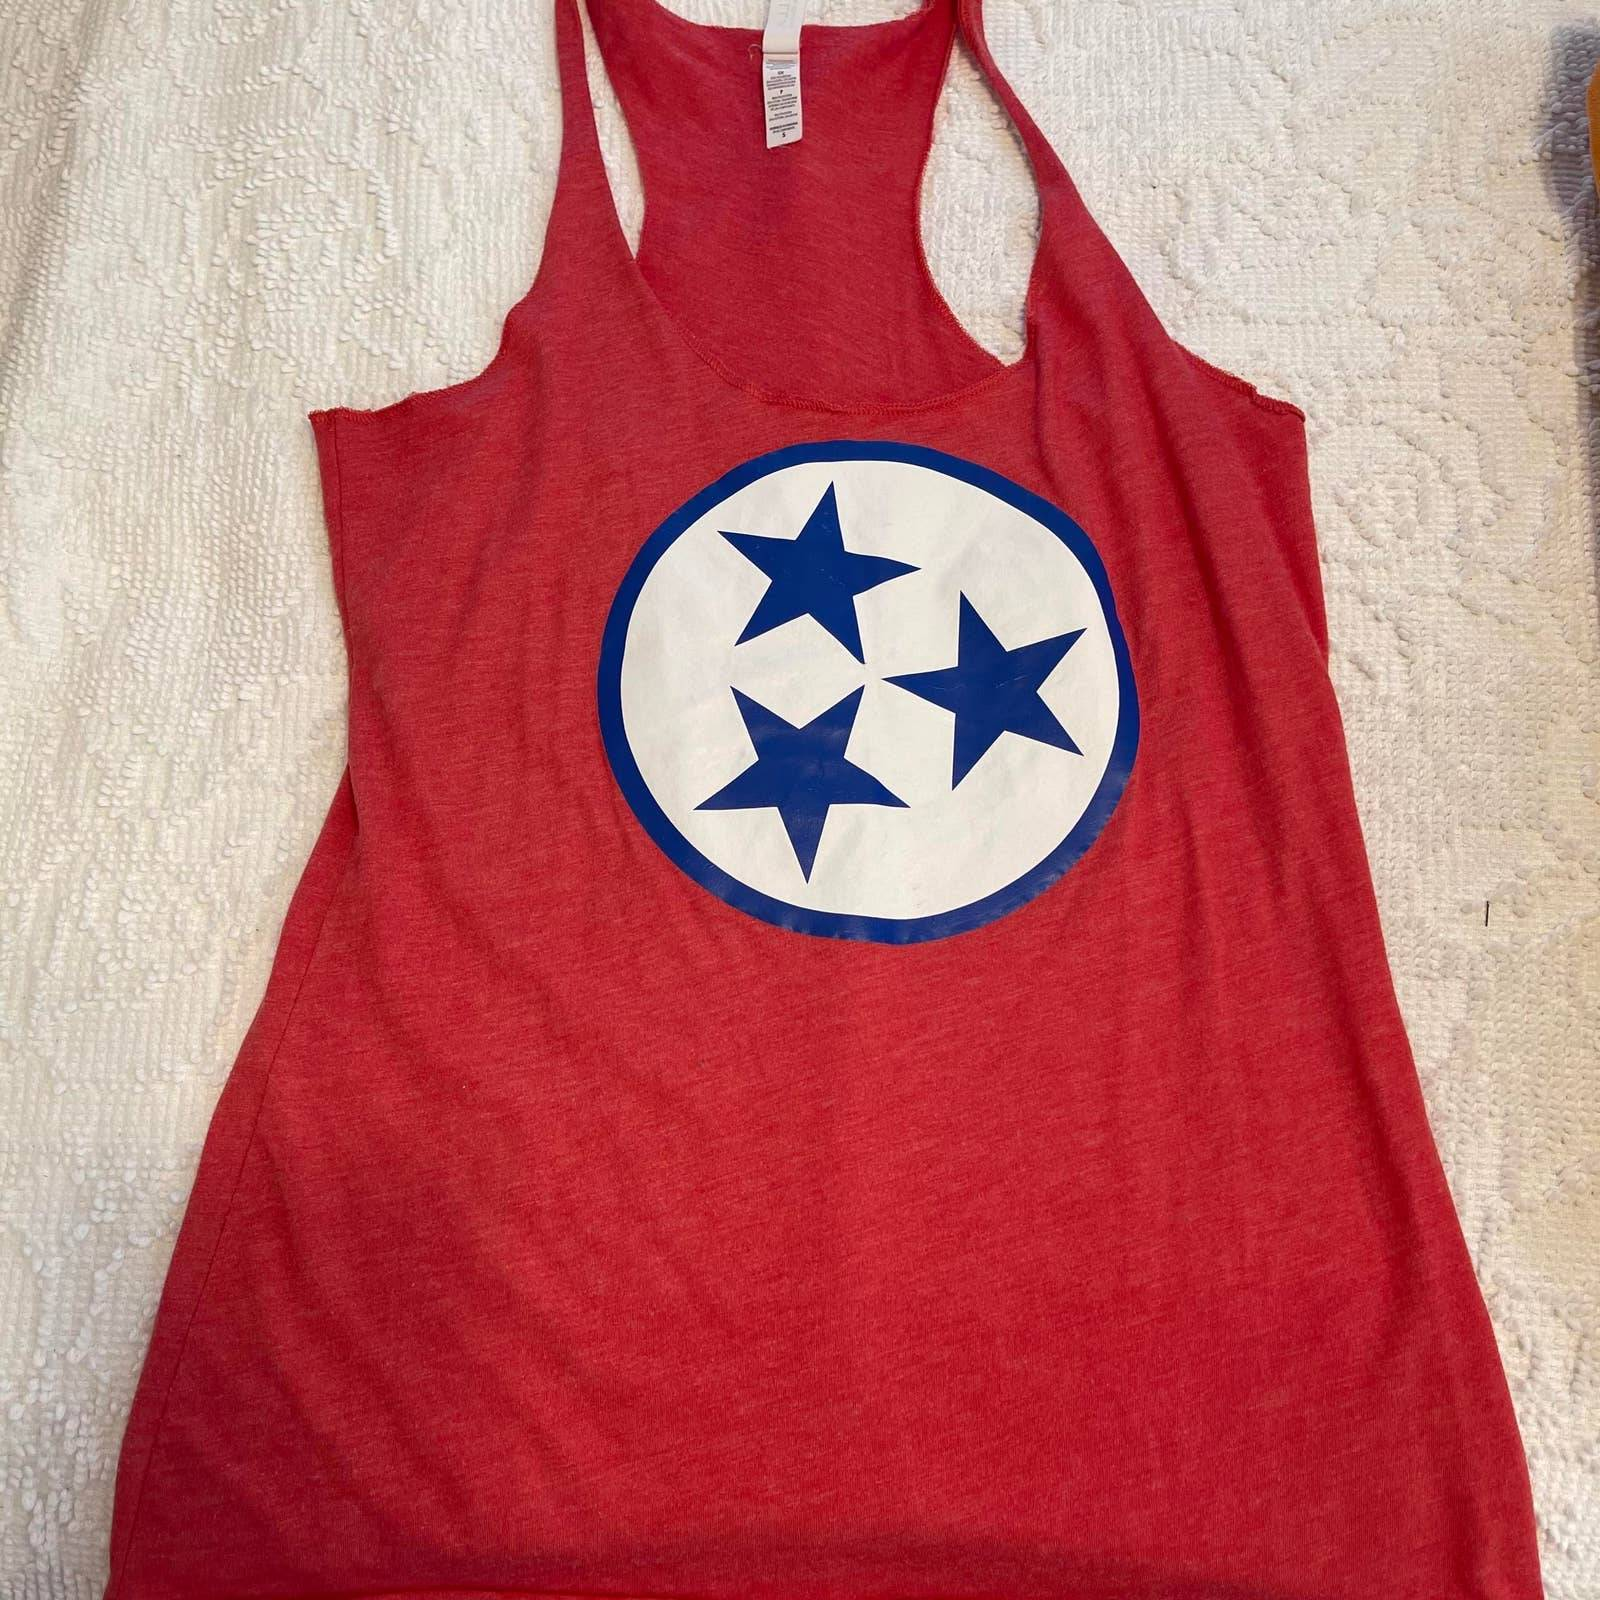 women's small tank top red tri-star